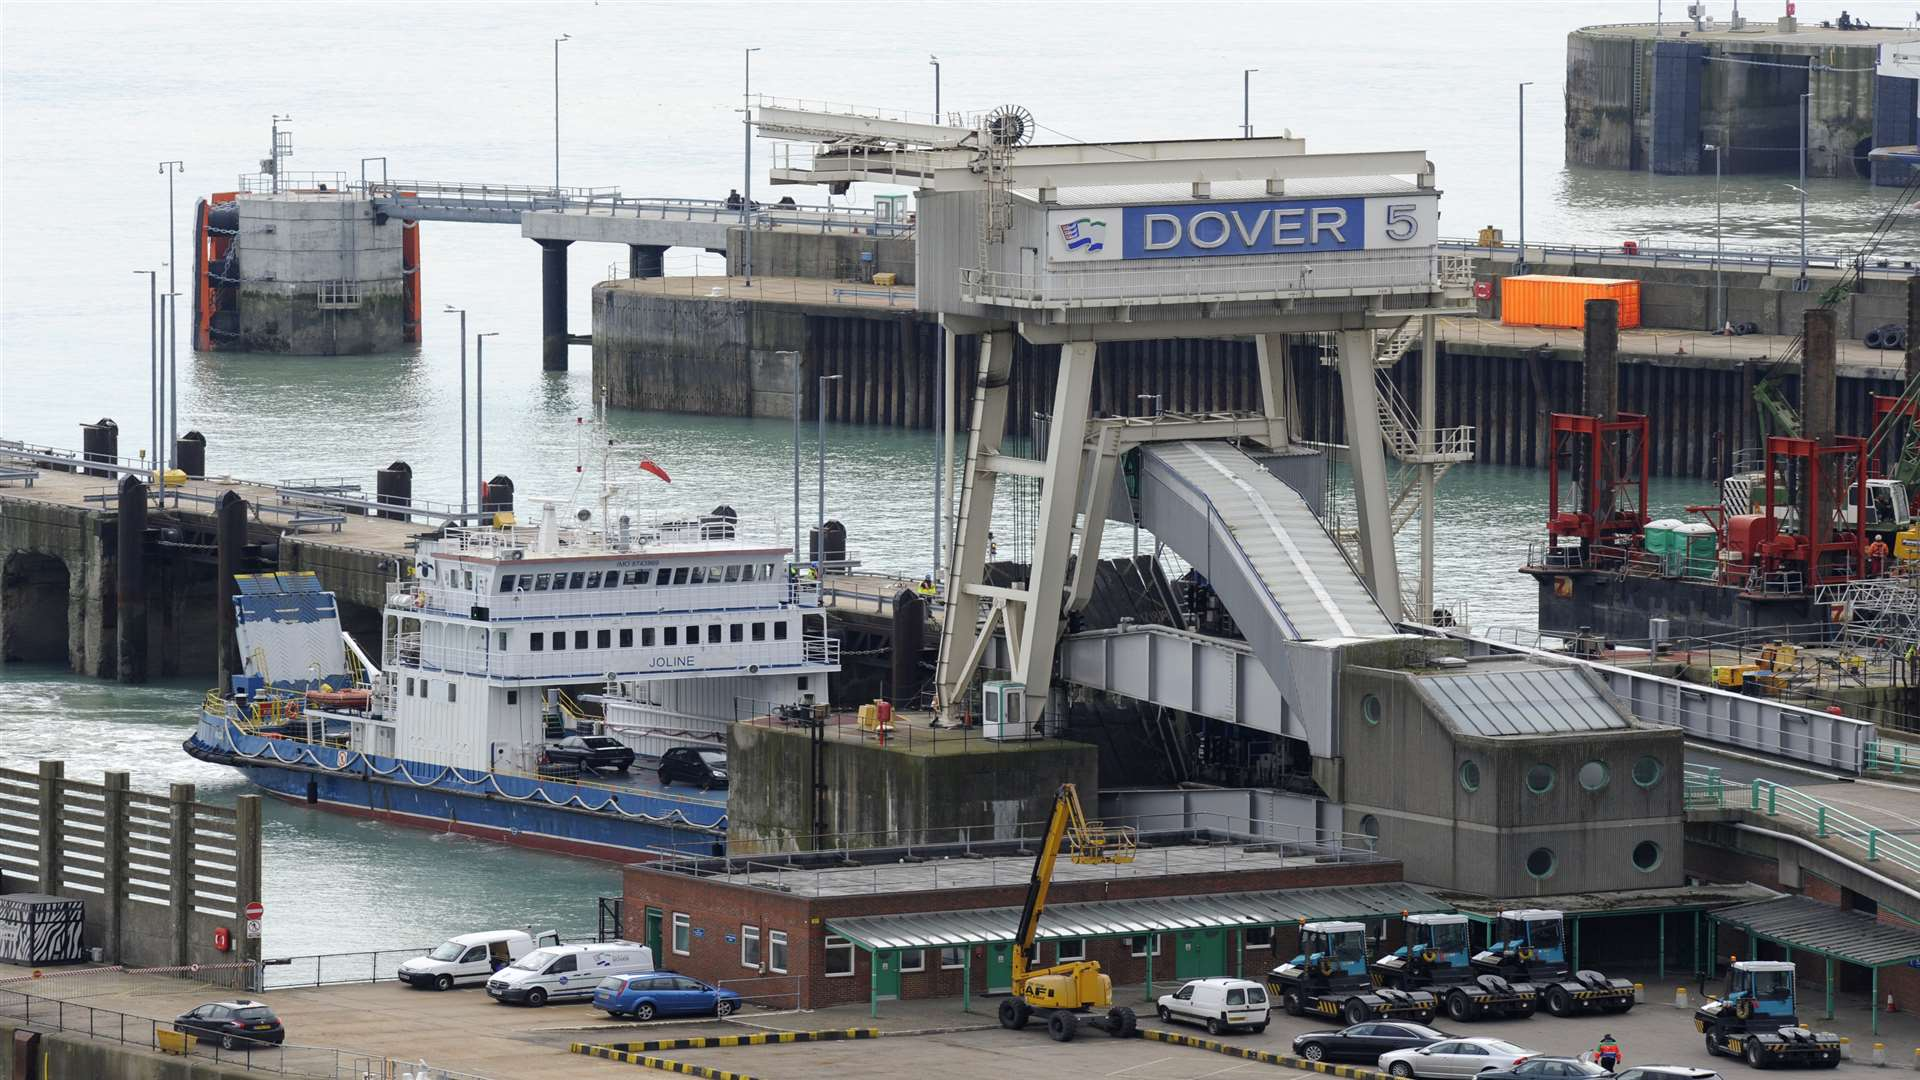 The Port of Dover handles more than £100 billion of international trade annually